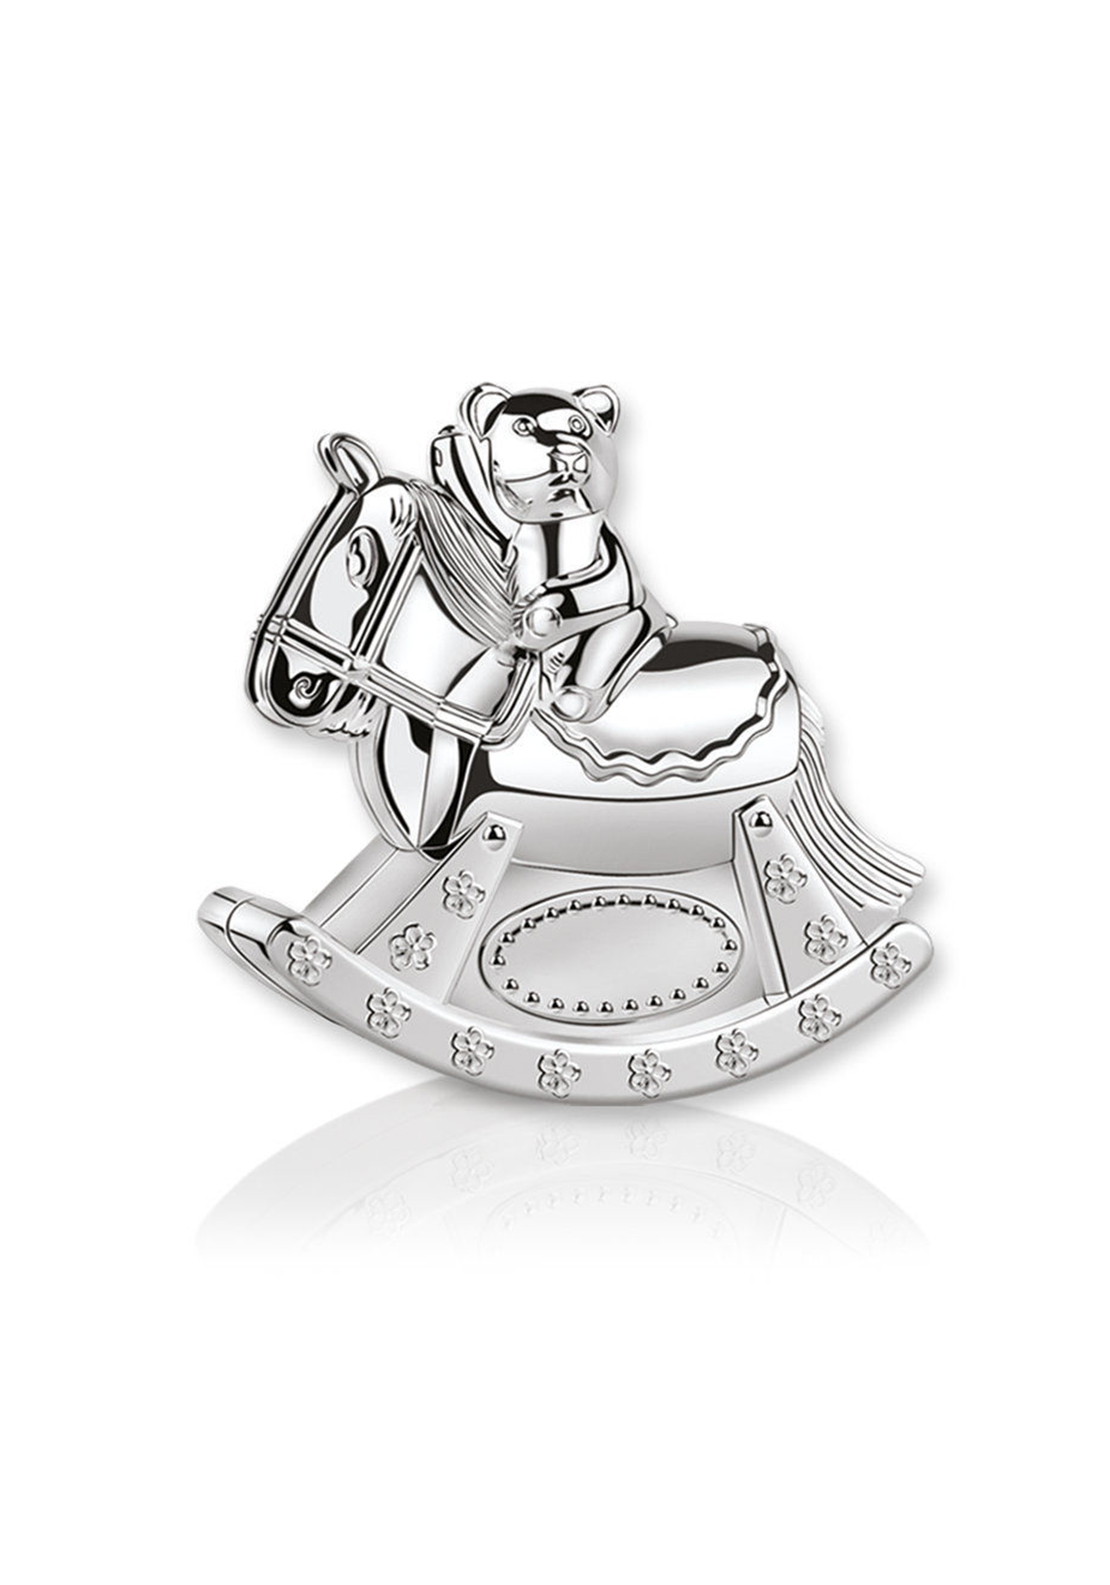 Newbridge Silverware Kids Collection Teddy Rocking Horse Moneybox